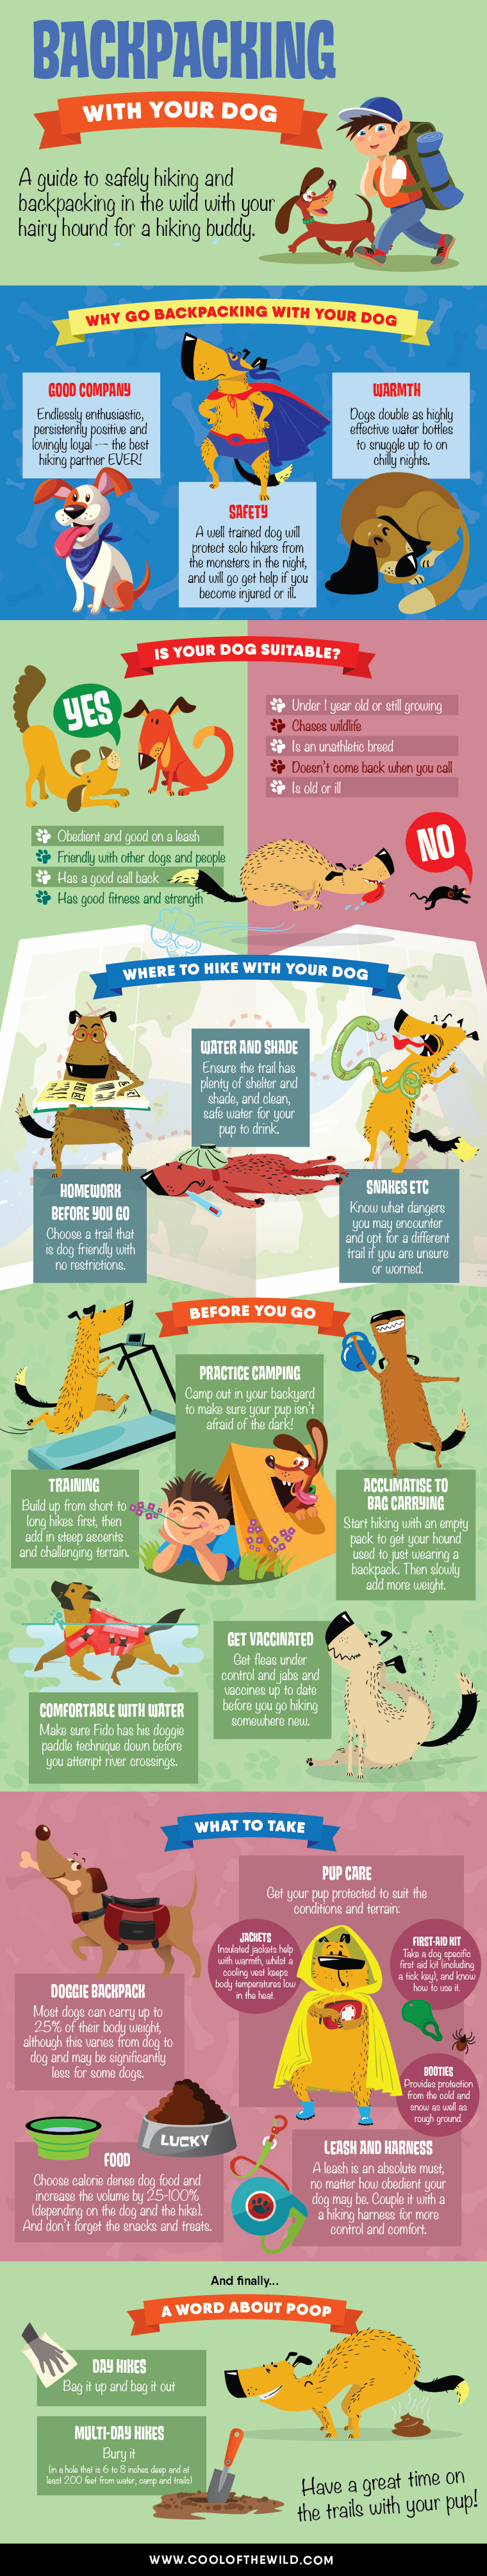 Backpacking with Dogs infographic